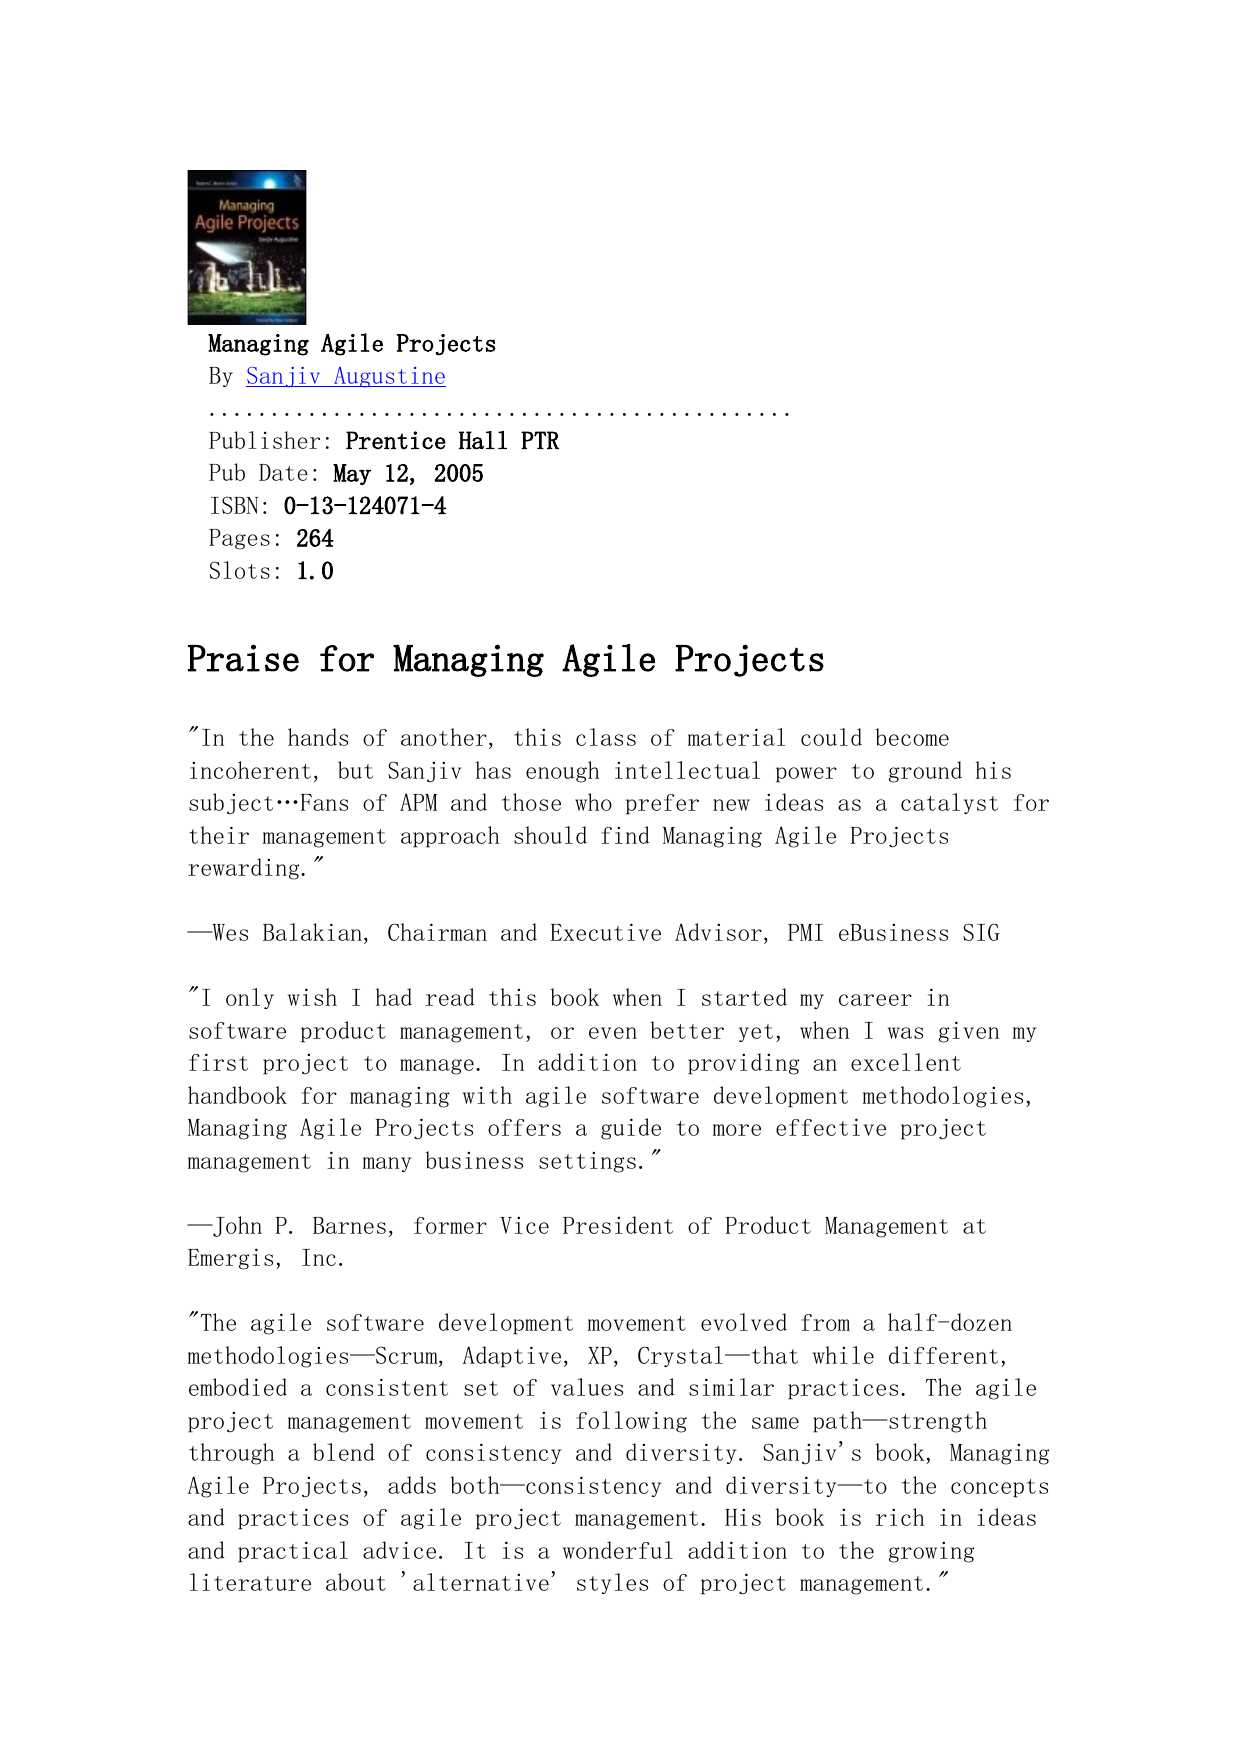 Sanjiv Augustine - Managing Agile Projects (2005 Prentice Hall) pdf